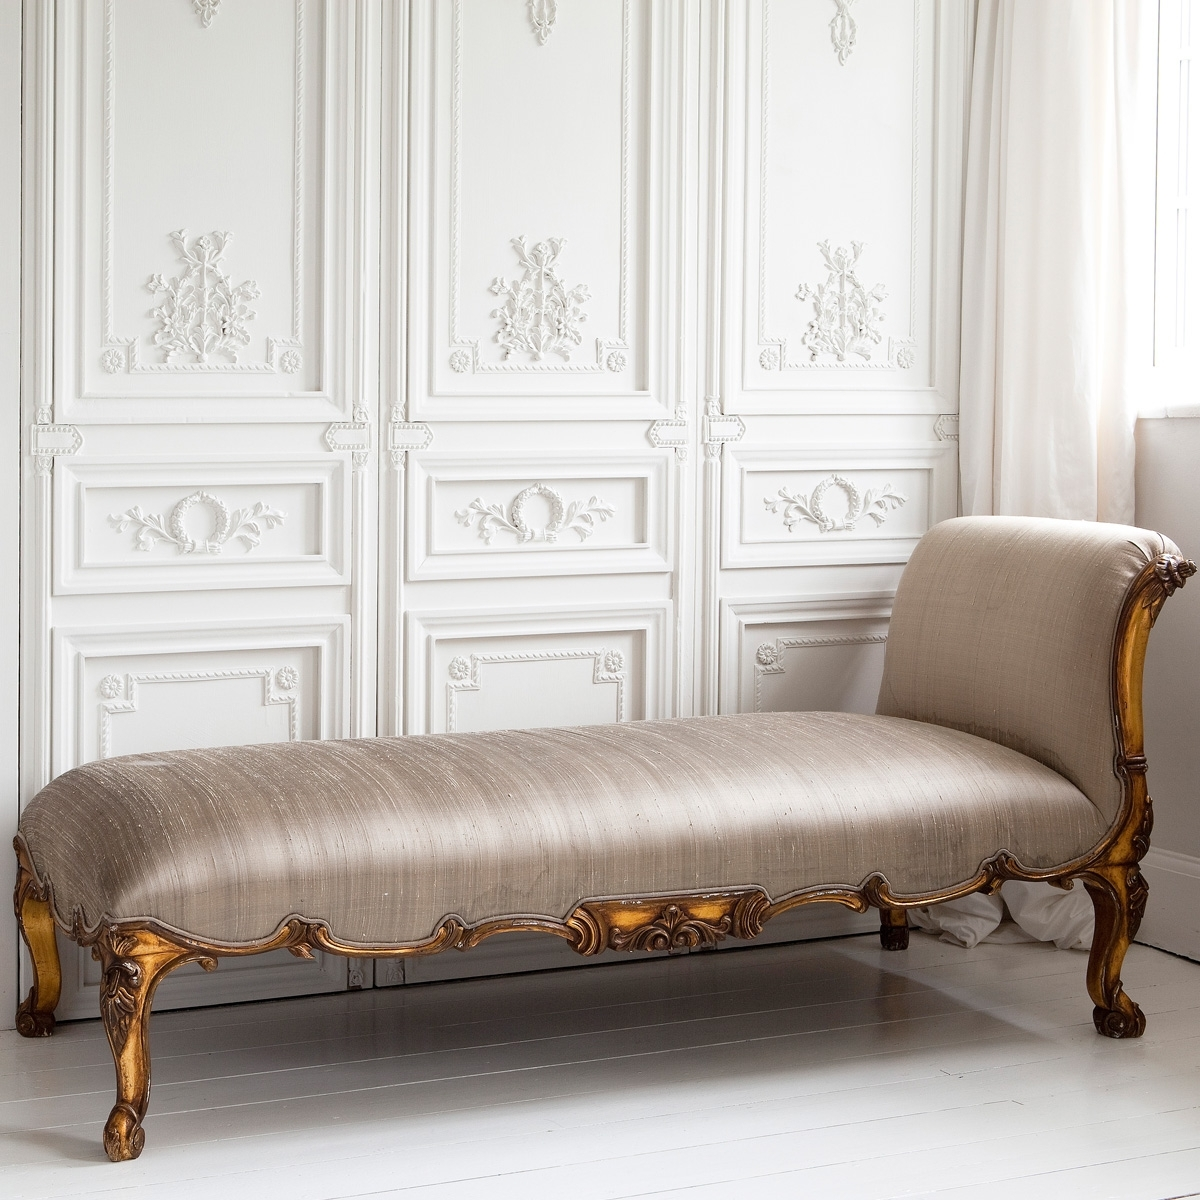 2018 Versailles Gold Chaise Loungethe French Bedroom Company With Regard To French Country Chaise Lounges (View 7 of 15)